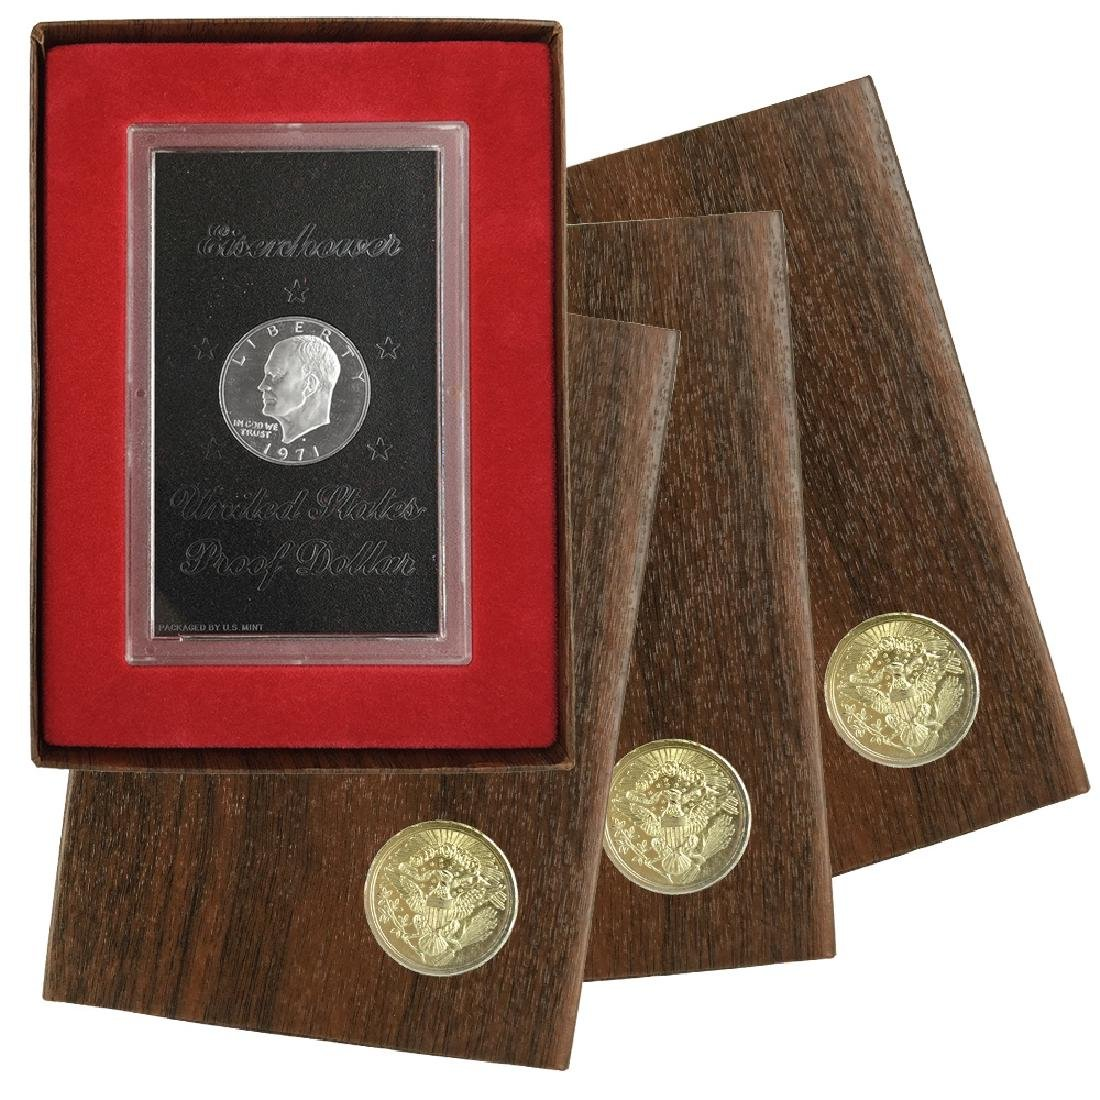 1971-1974 EISENHOWER DOLLAR PROOF BROWN PACKS